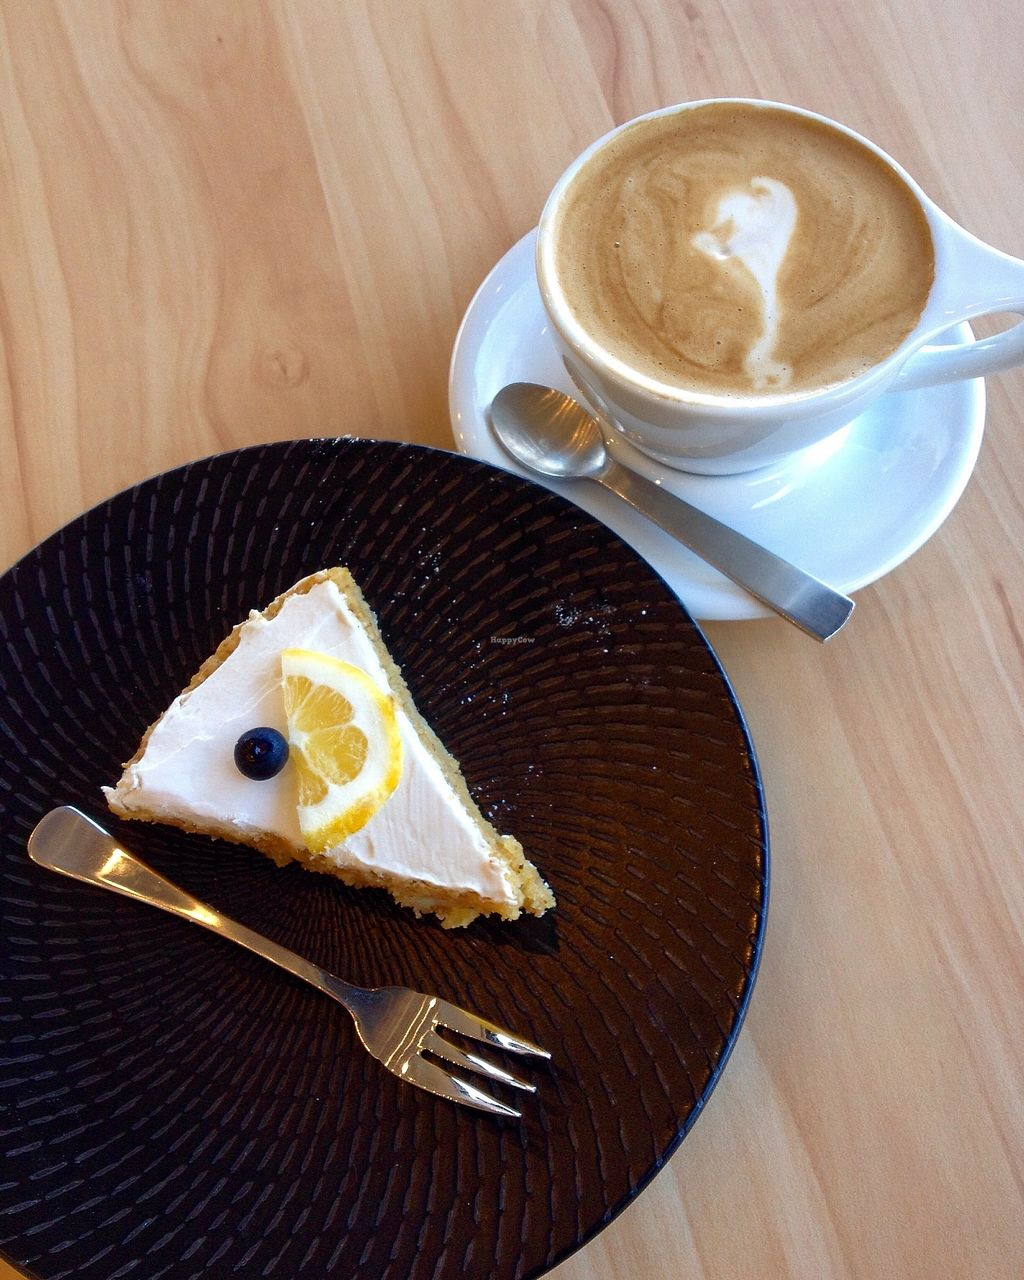 "Photo of The Origin  by <a href=""/members/profile/Gravenhale"">Gravenhale</a> <br/>Lemon cake and coconut milk coffee <br/> September 7, 2017  - <a href='/contact/abuse/image/83663/301725'>Report</a>"